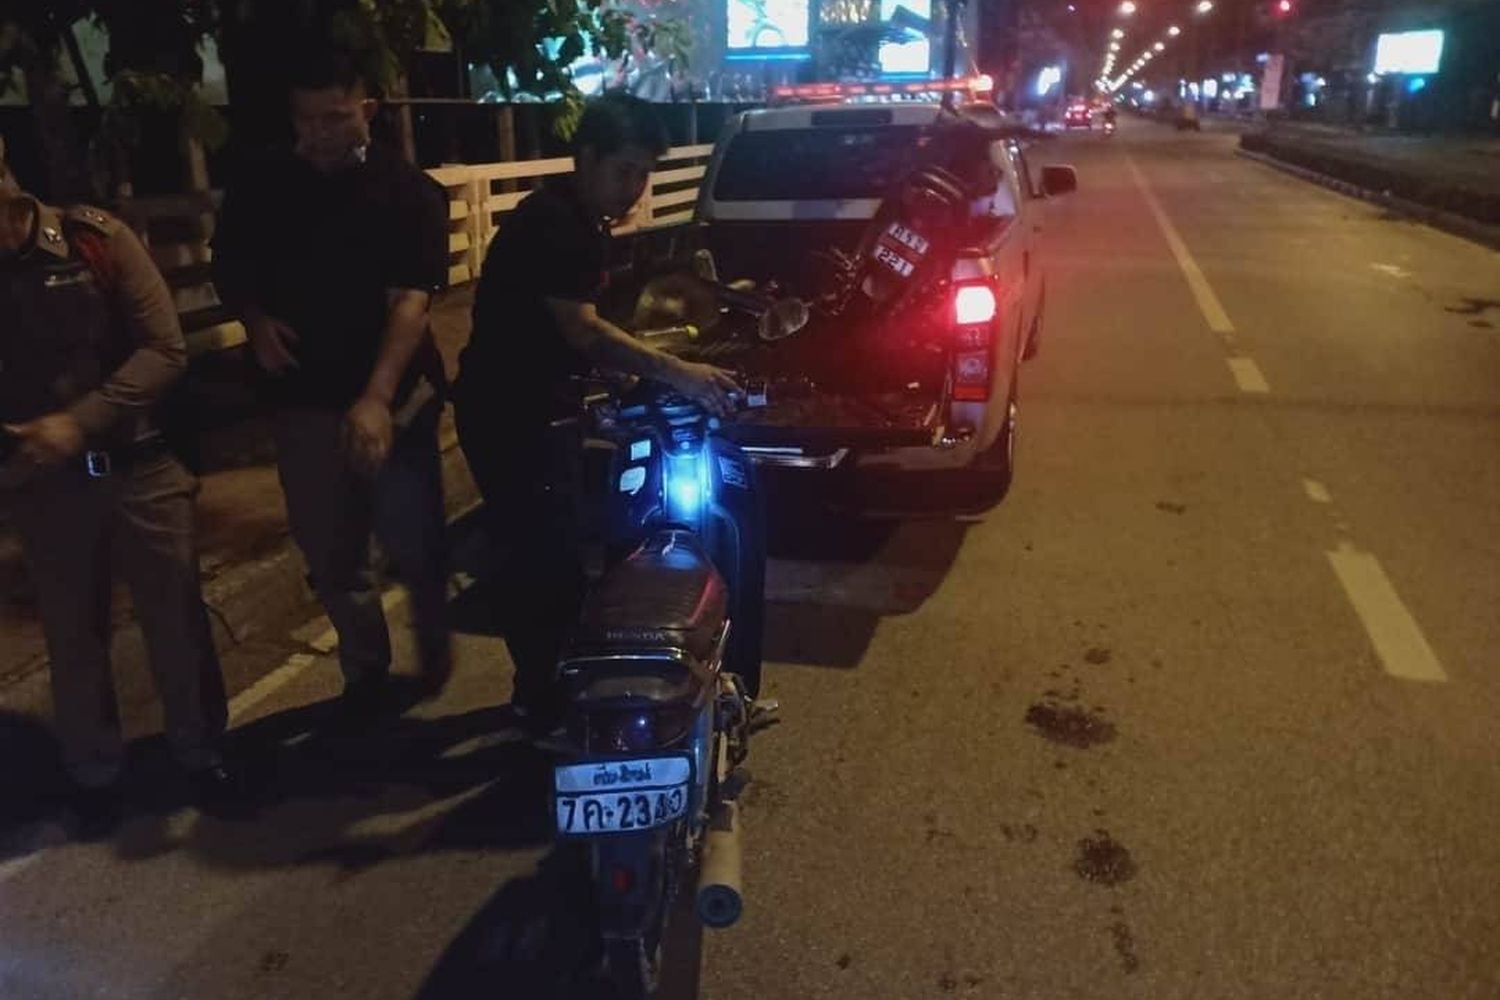 One of the motorcycles involved in a crash in Chiang Mai in which Jaruchart Maadthong, 40, was killed. (Photo from Facebook@KUSOLSONGKHORCHIANGMAIRESCUE)